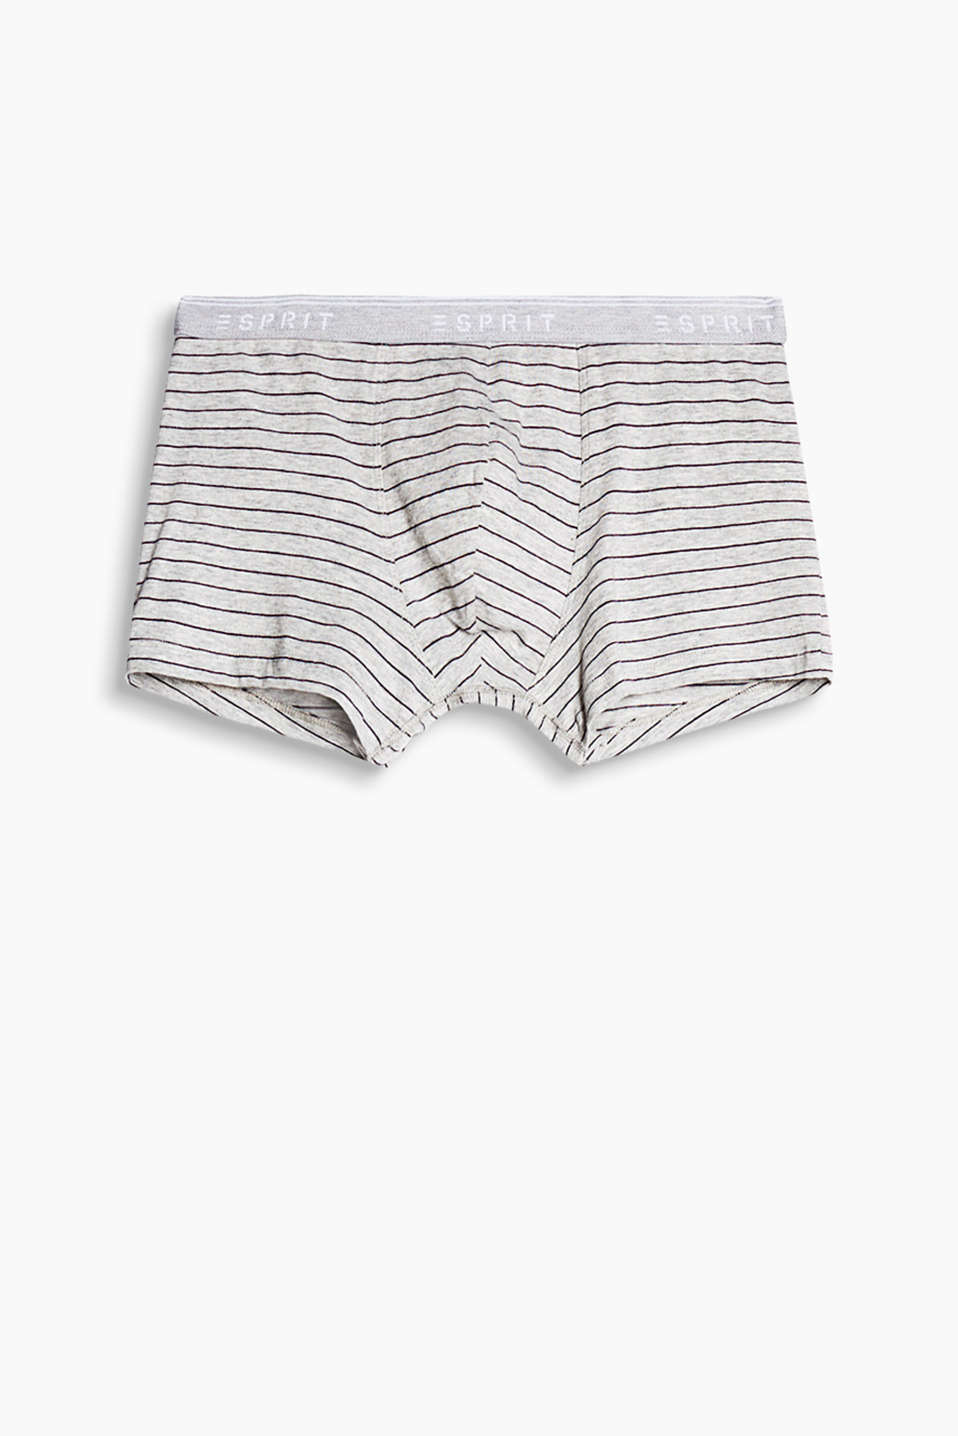 These hipster shorts in stretch cotton with a logo elasticated waistband are super comfortable and have sporty stripes!